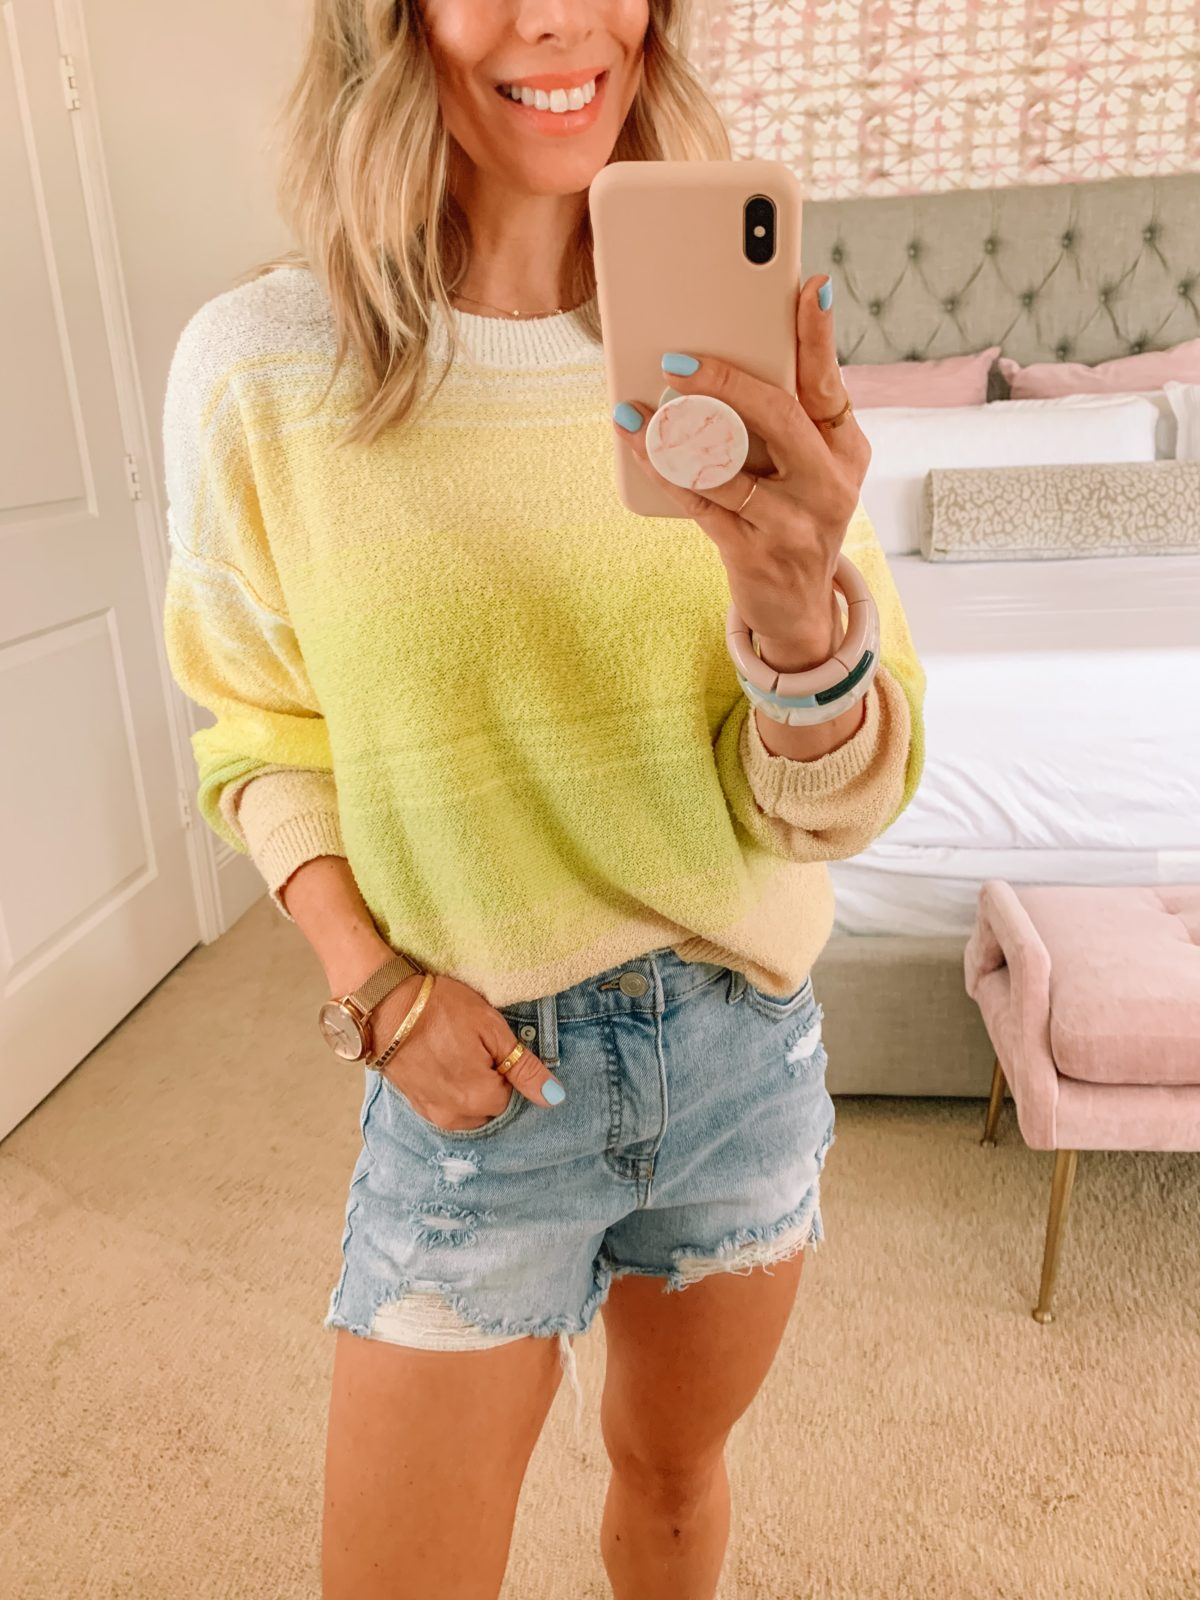 Dressing Room Finds, Walmart, Yellow Sweater, Shorts, Sandals